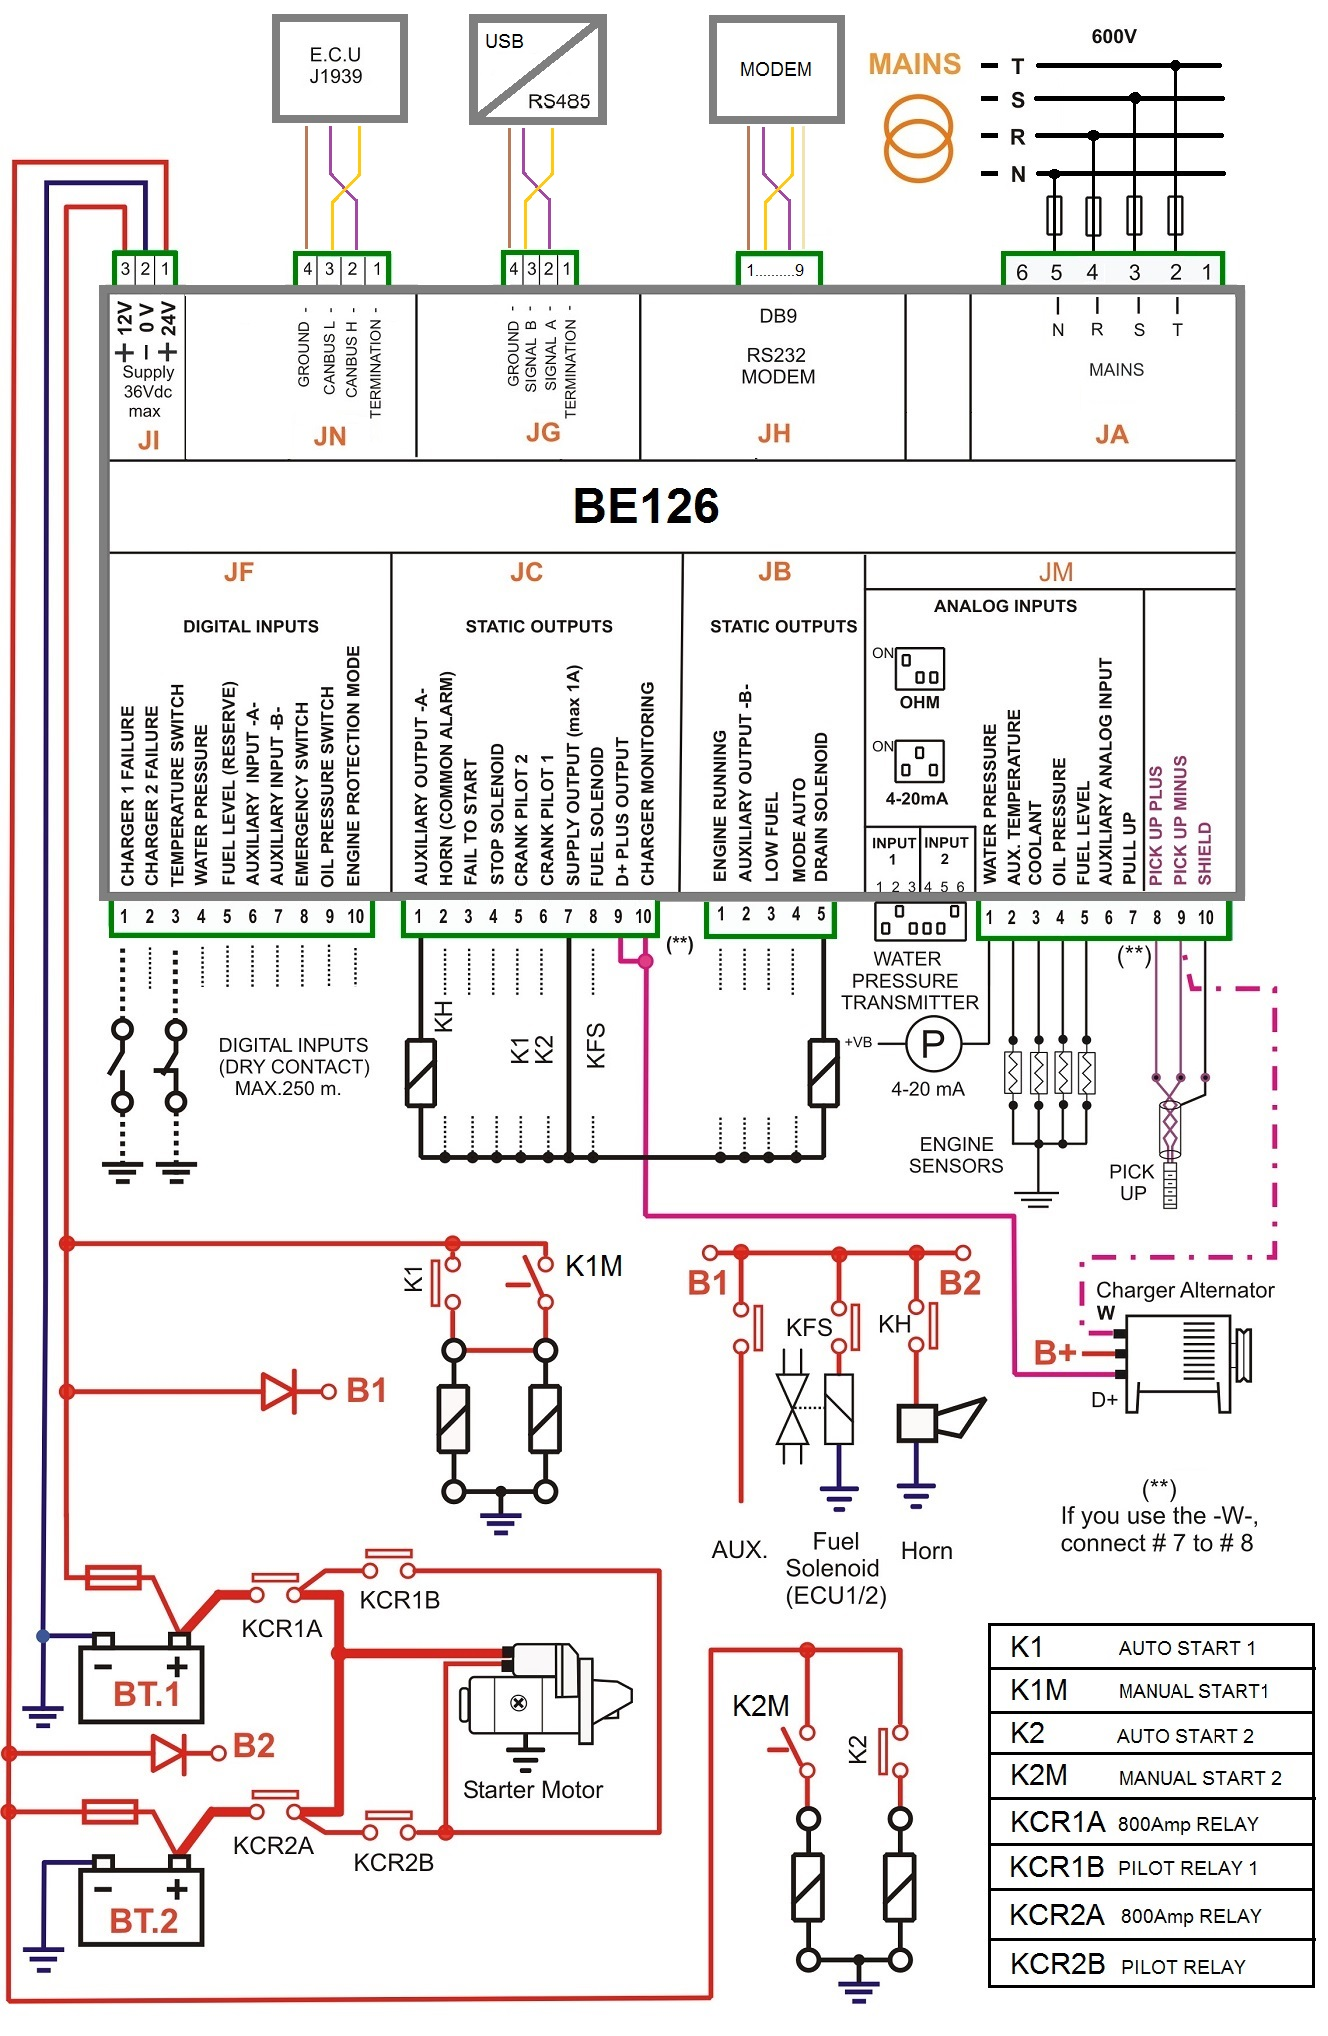 hight resolution of fire pump controller wiring diagram genset controller versamatic pump diagram fire pump controller wiring diagram